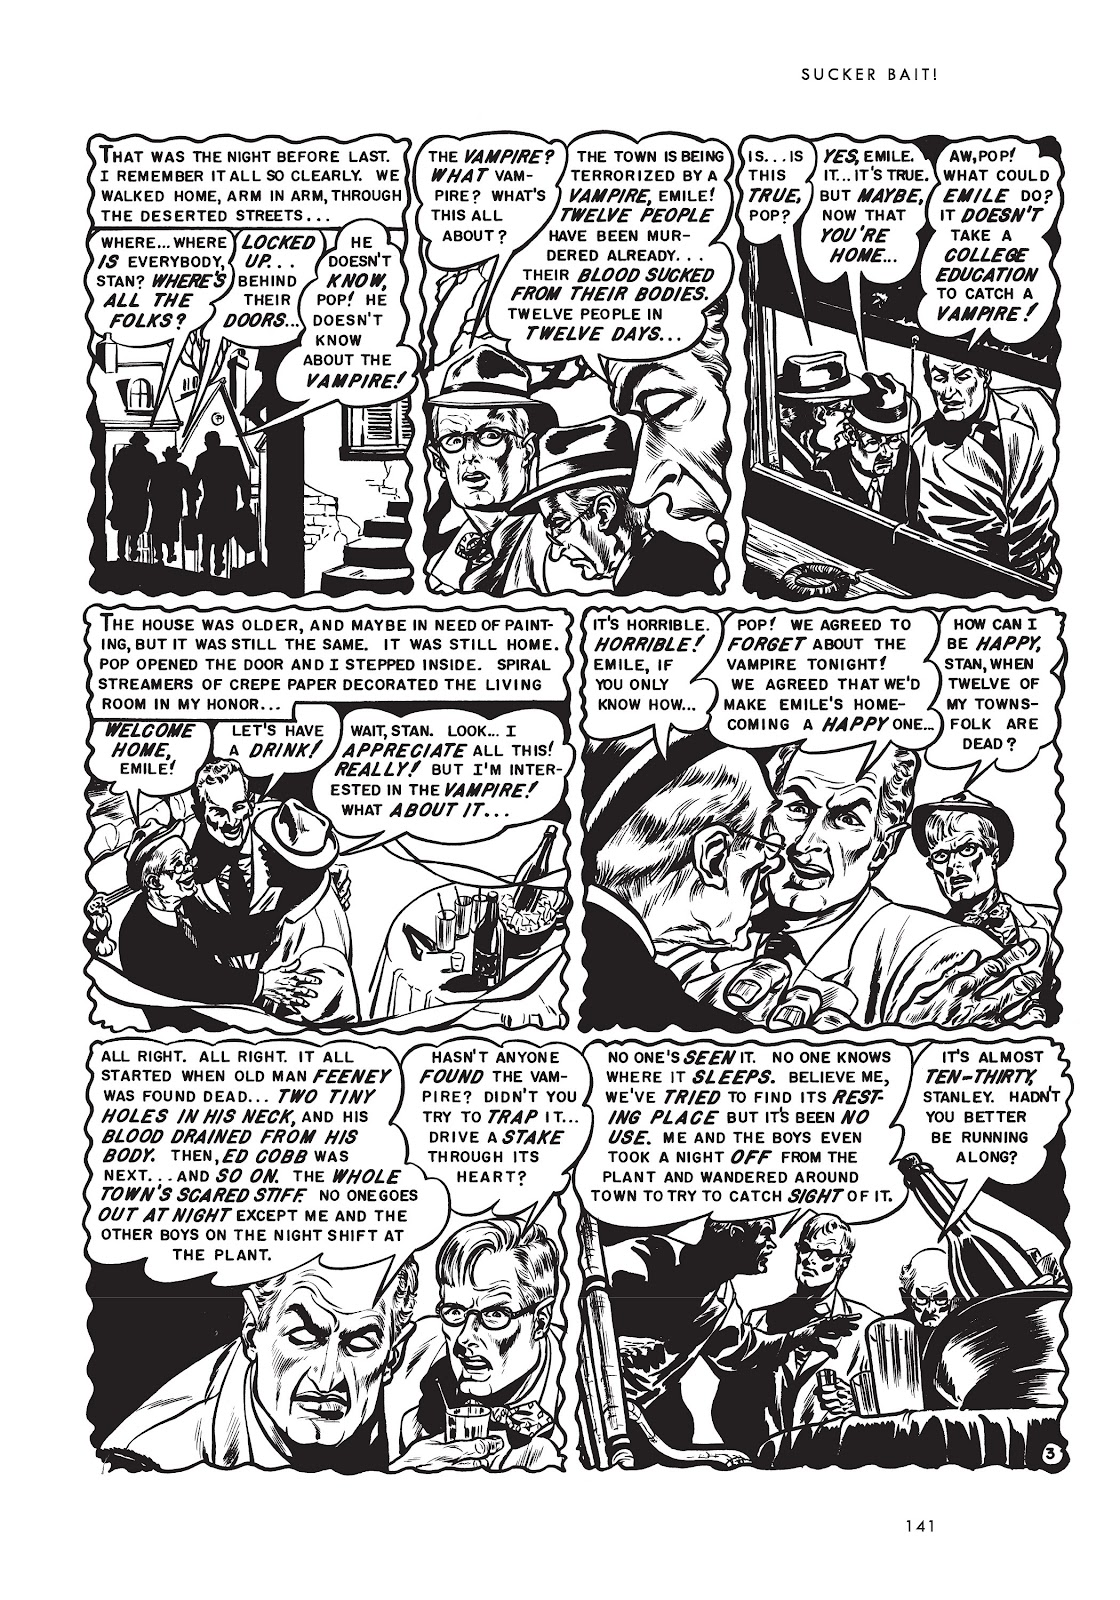 Read online Sucker Bait and Other Stories comic -  Issue # TPB (Part 2) - 56